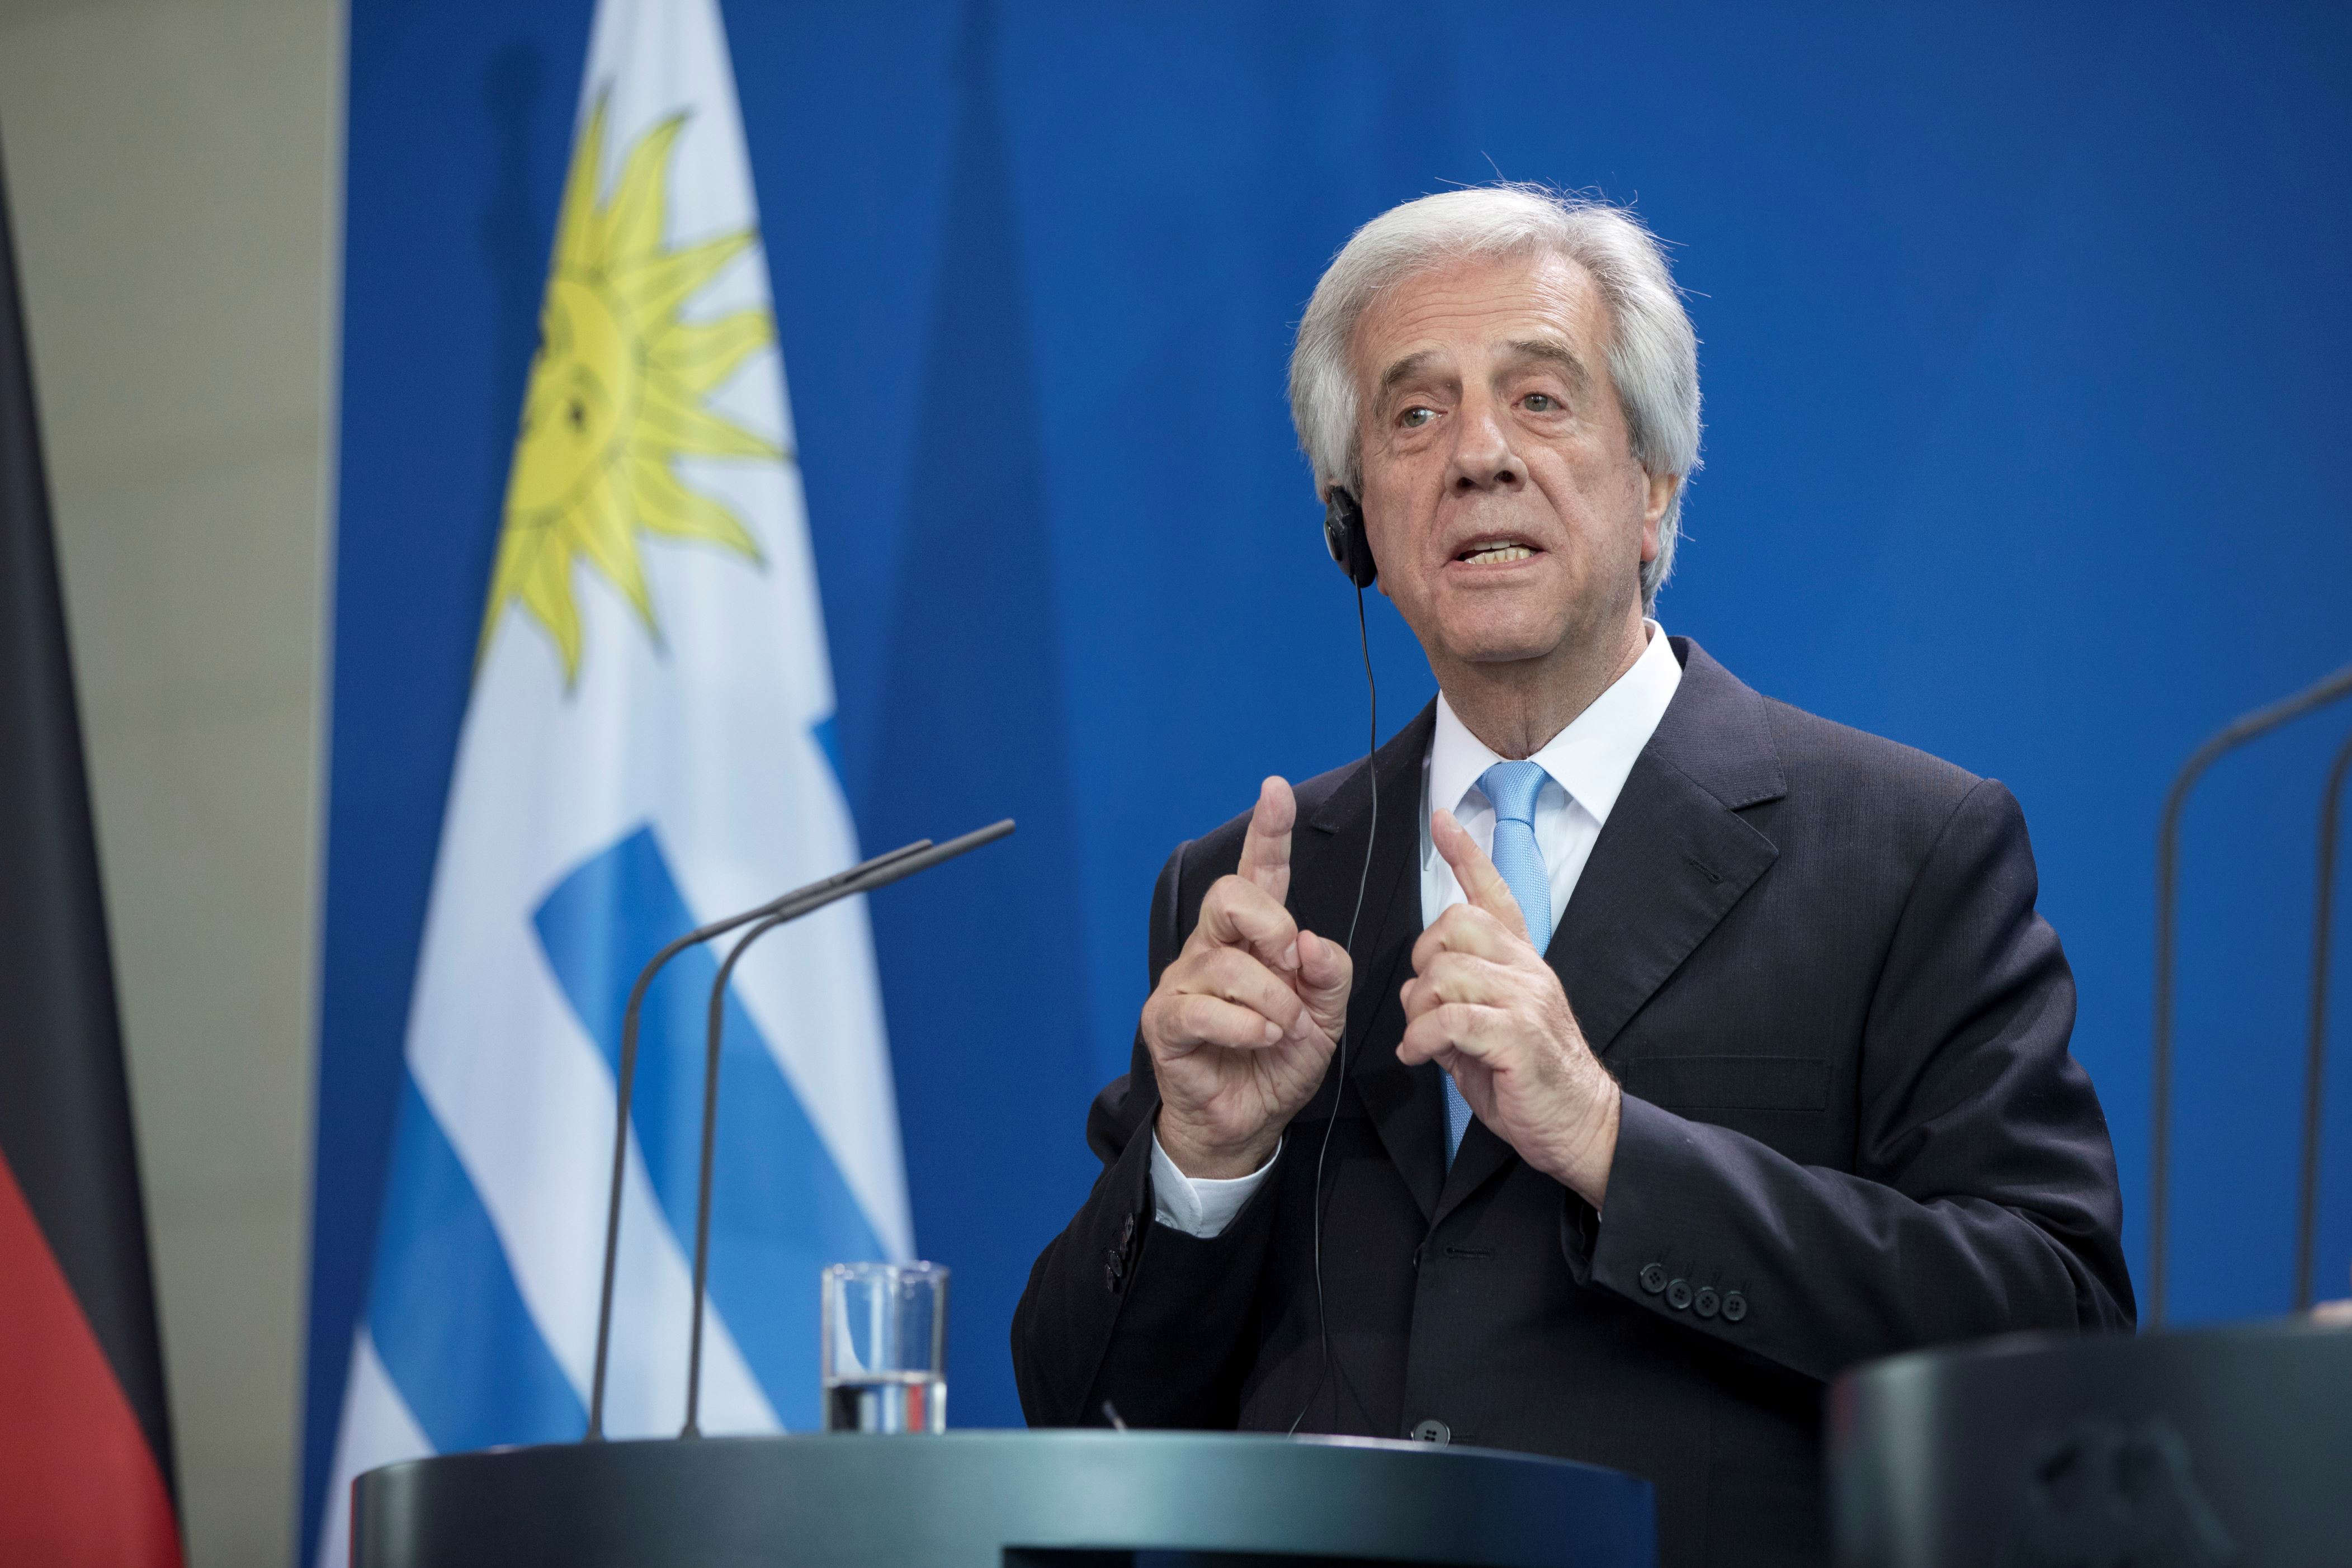 Slide 28 of 35: President of Uruguay Tabare Vazquez is pictured during a news conference held with German Chancellor Angela Merkel (not in the picture) at the Chancellery in Berlin, Germany on February 8, 2017. (Photo by Emmanuele Contini/NurPhoto via Getty Images)